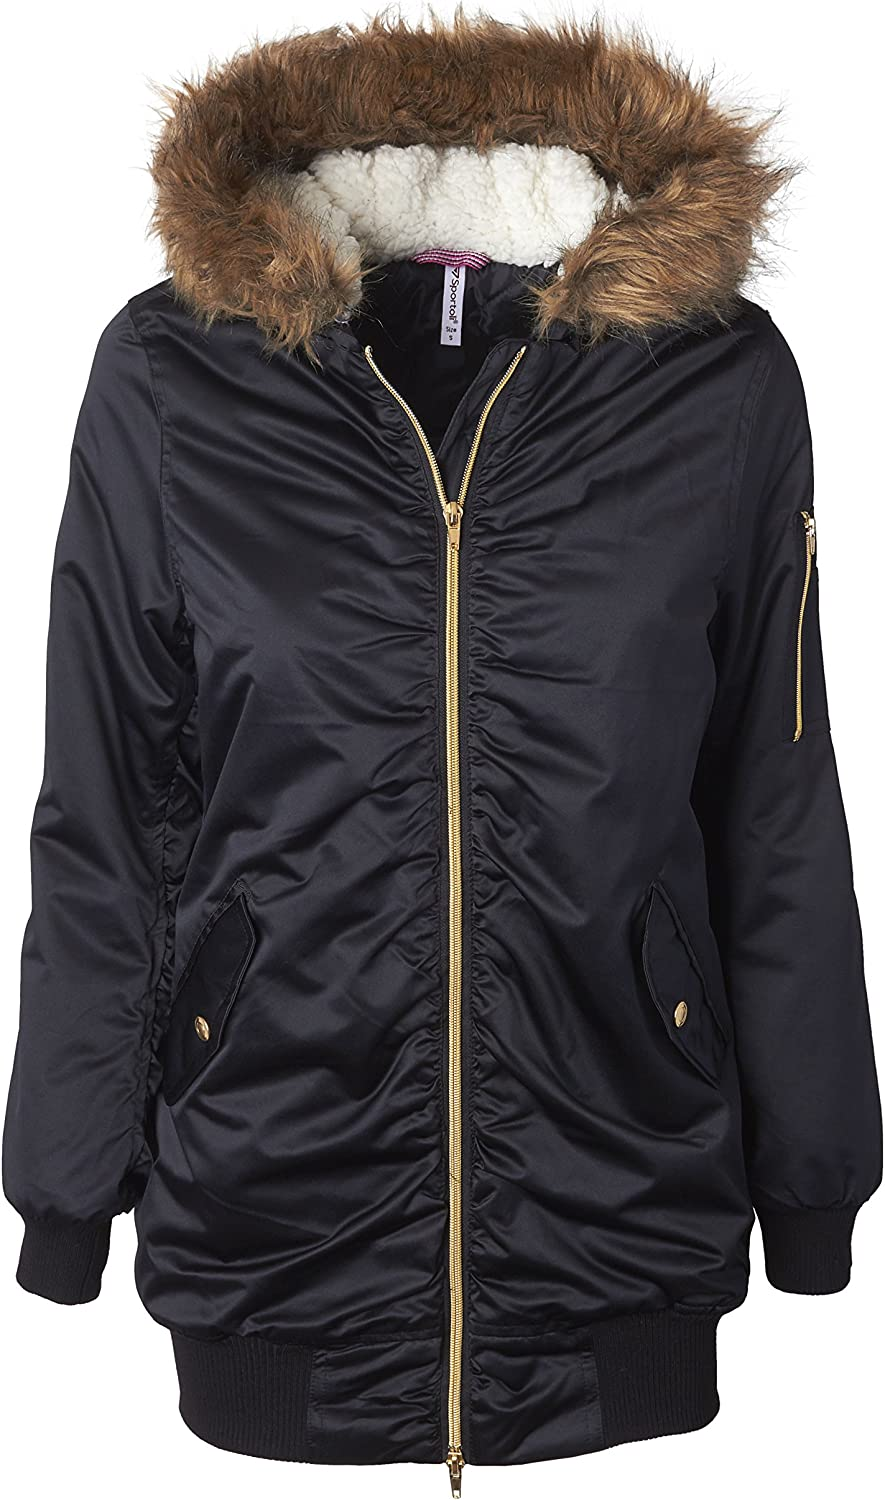 Sportoli Women's Bomber Winter Puffer Jacket with Attached Sherpa Lined Hood and Removable Faux Fur Trim